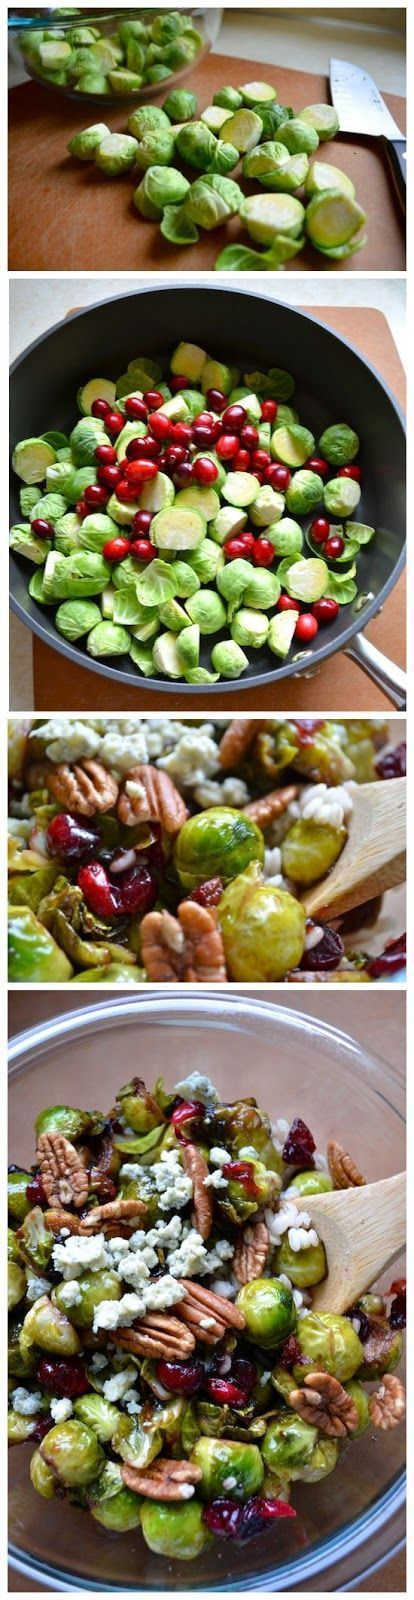 PAN-SEARED BRUSSELS SPROUTS WITH CRANBERRIES & PECANS ........ Ingredients: 1 pound brussels sprouts, de-stemed and halved 2/3 cup fresh cranberries 1/3 cup gorgonzola cheese, crumbled 1/3 cup pecans 1/2 cup barley 1 tablespoon maple syrup 1 tablespoon ba